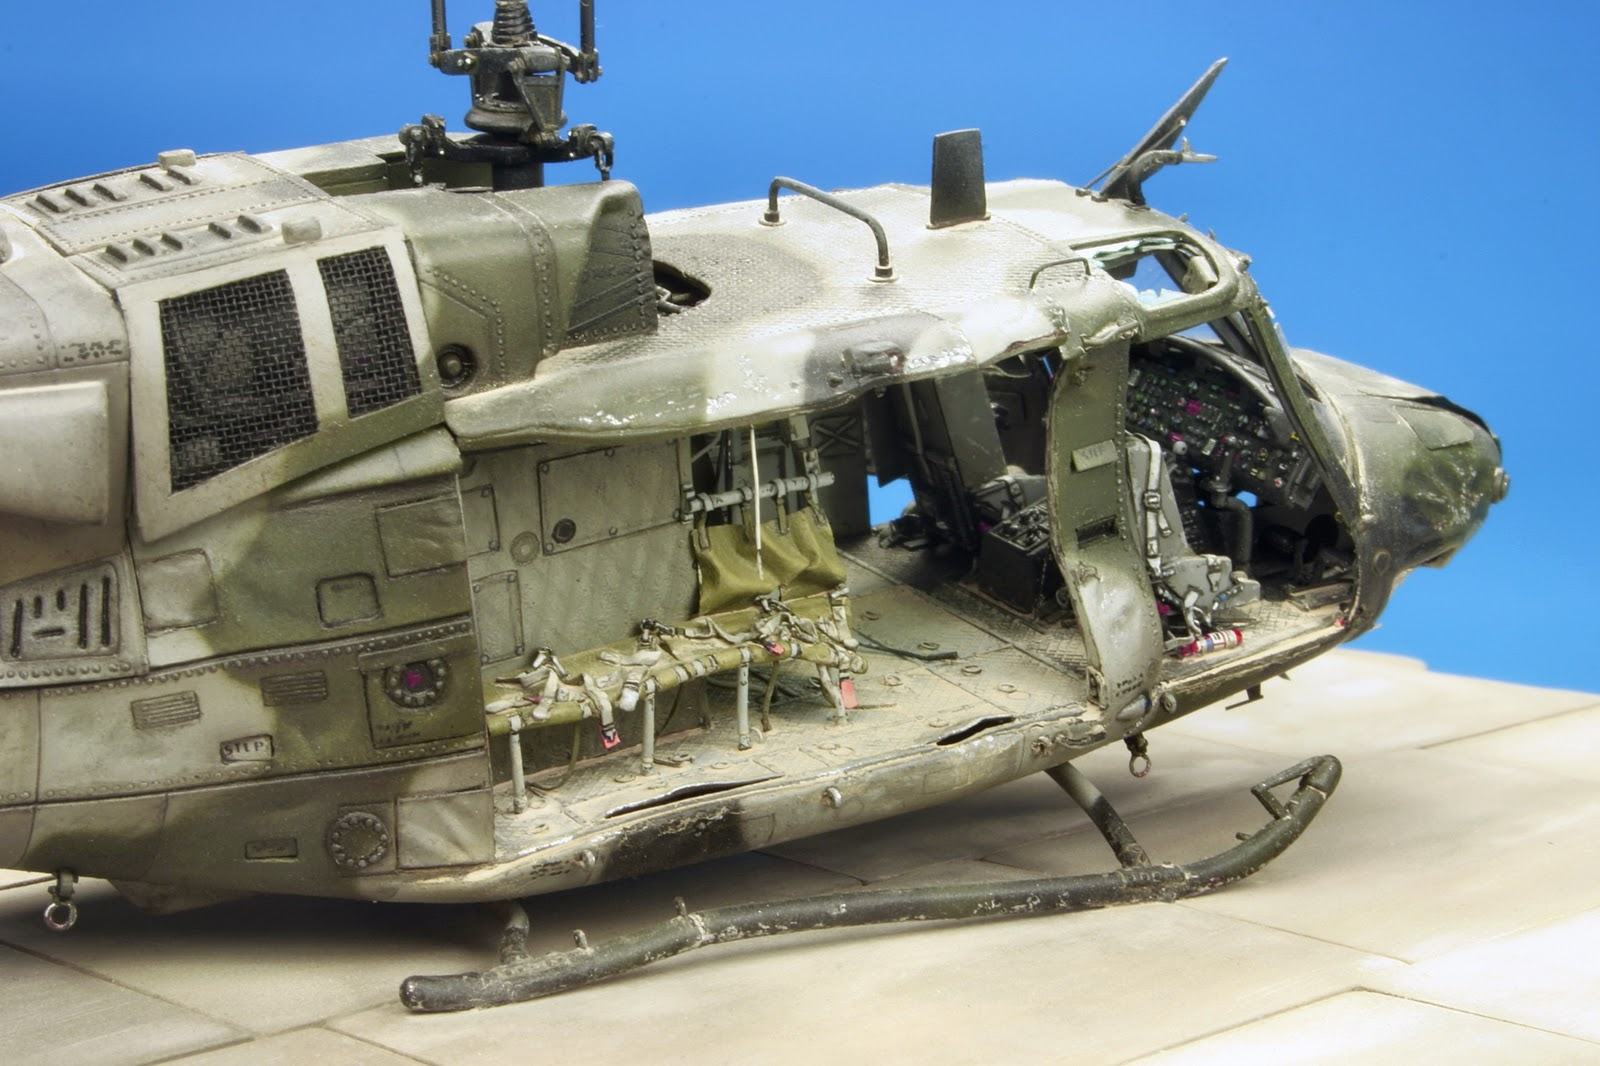 miniature helicopters with Huey Down Work Italeri 172 on ZG in addition Nordiccon 2012 Part 1 moreover Huey Down Work Italeri 172 in addition 331859066263274106 furthermore kyosho    mon image.